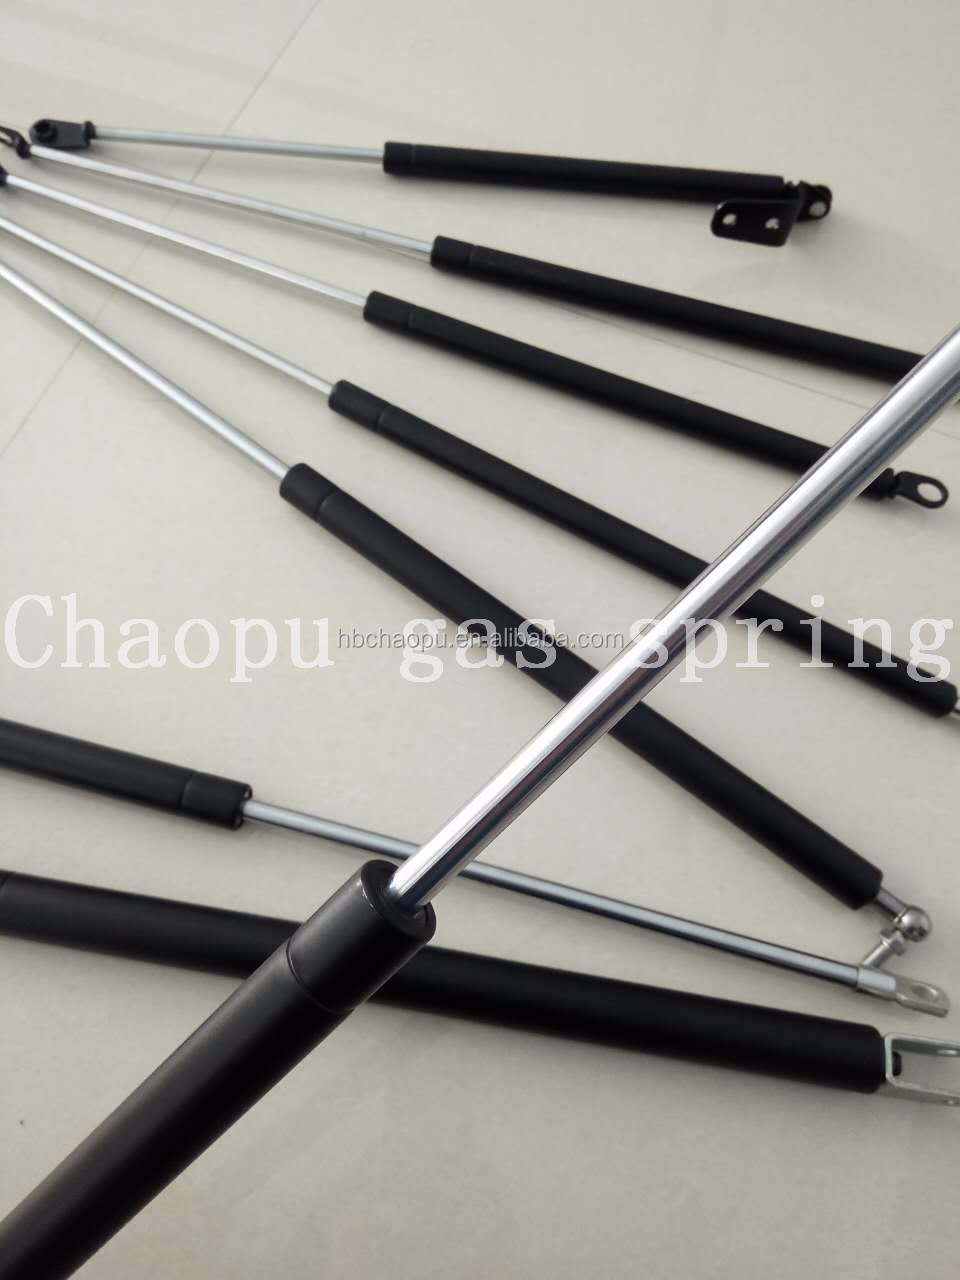 Cabinet Shock Absorber Cabinet Springs Cabinet Springs Suppliers And Manufacturers At